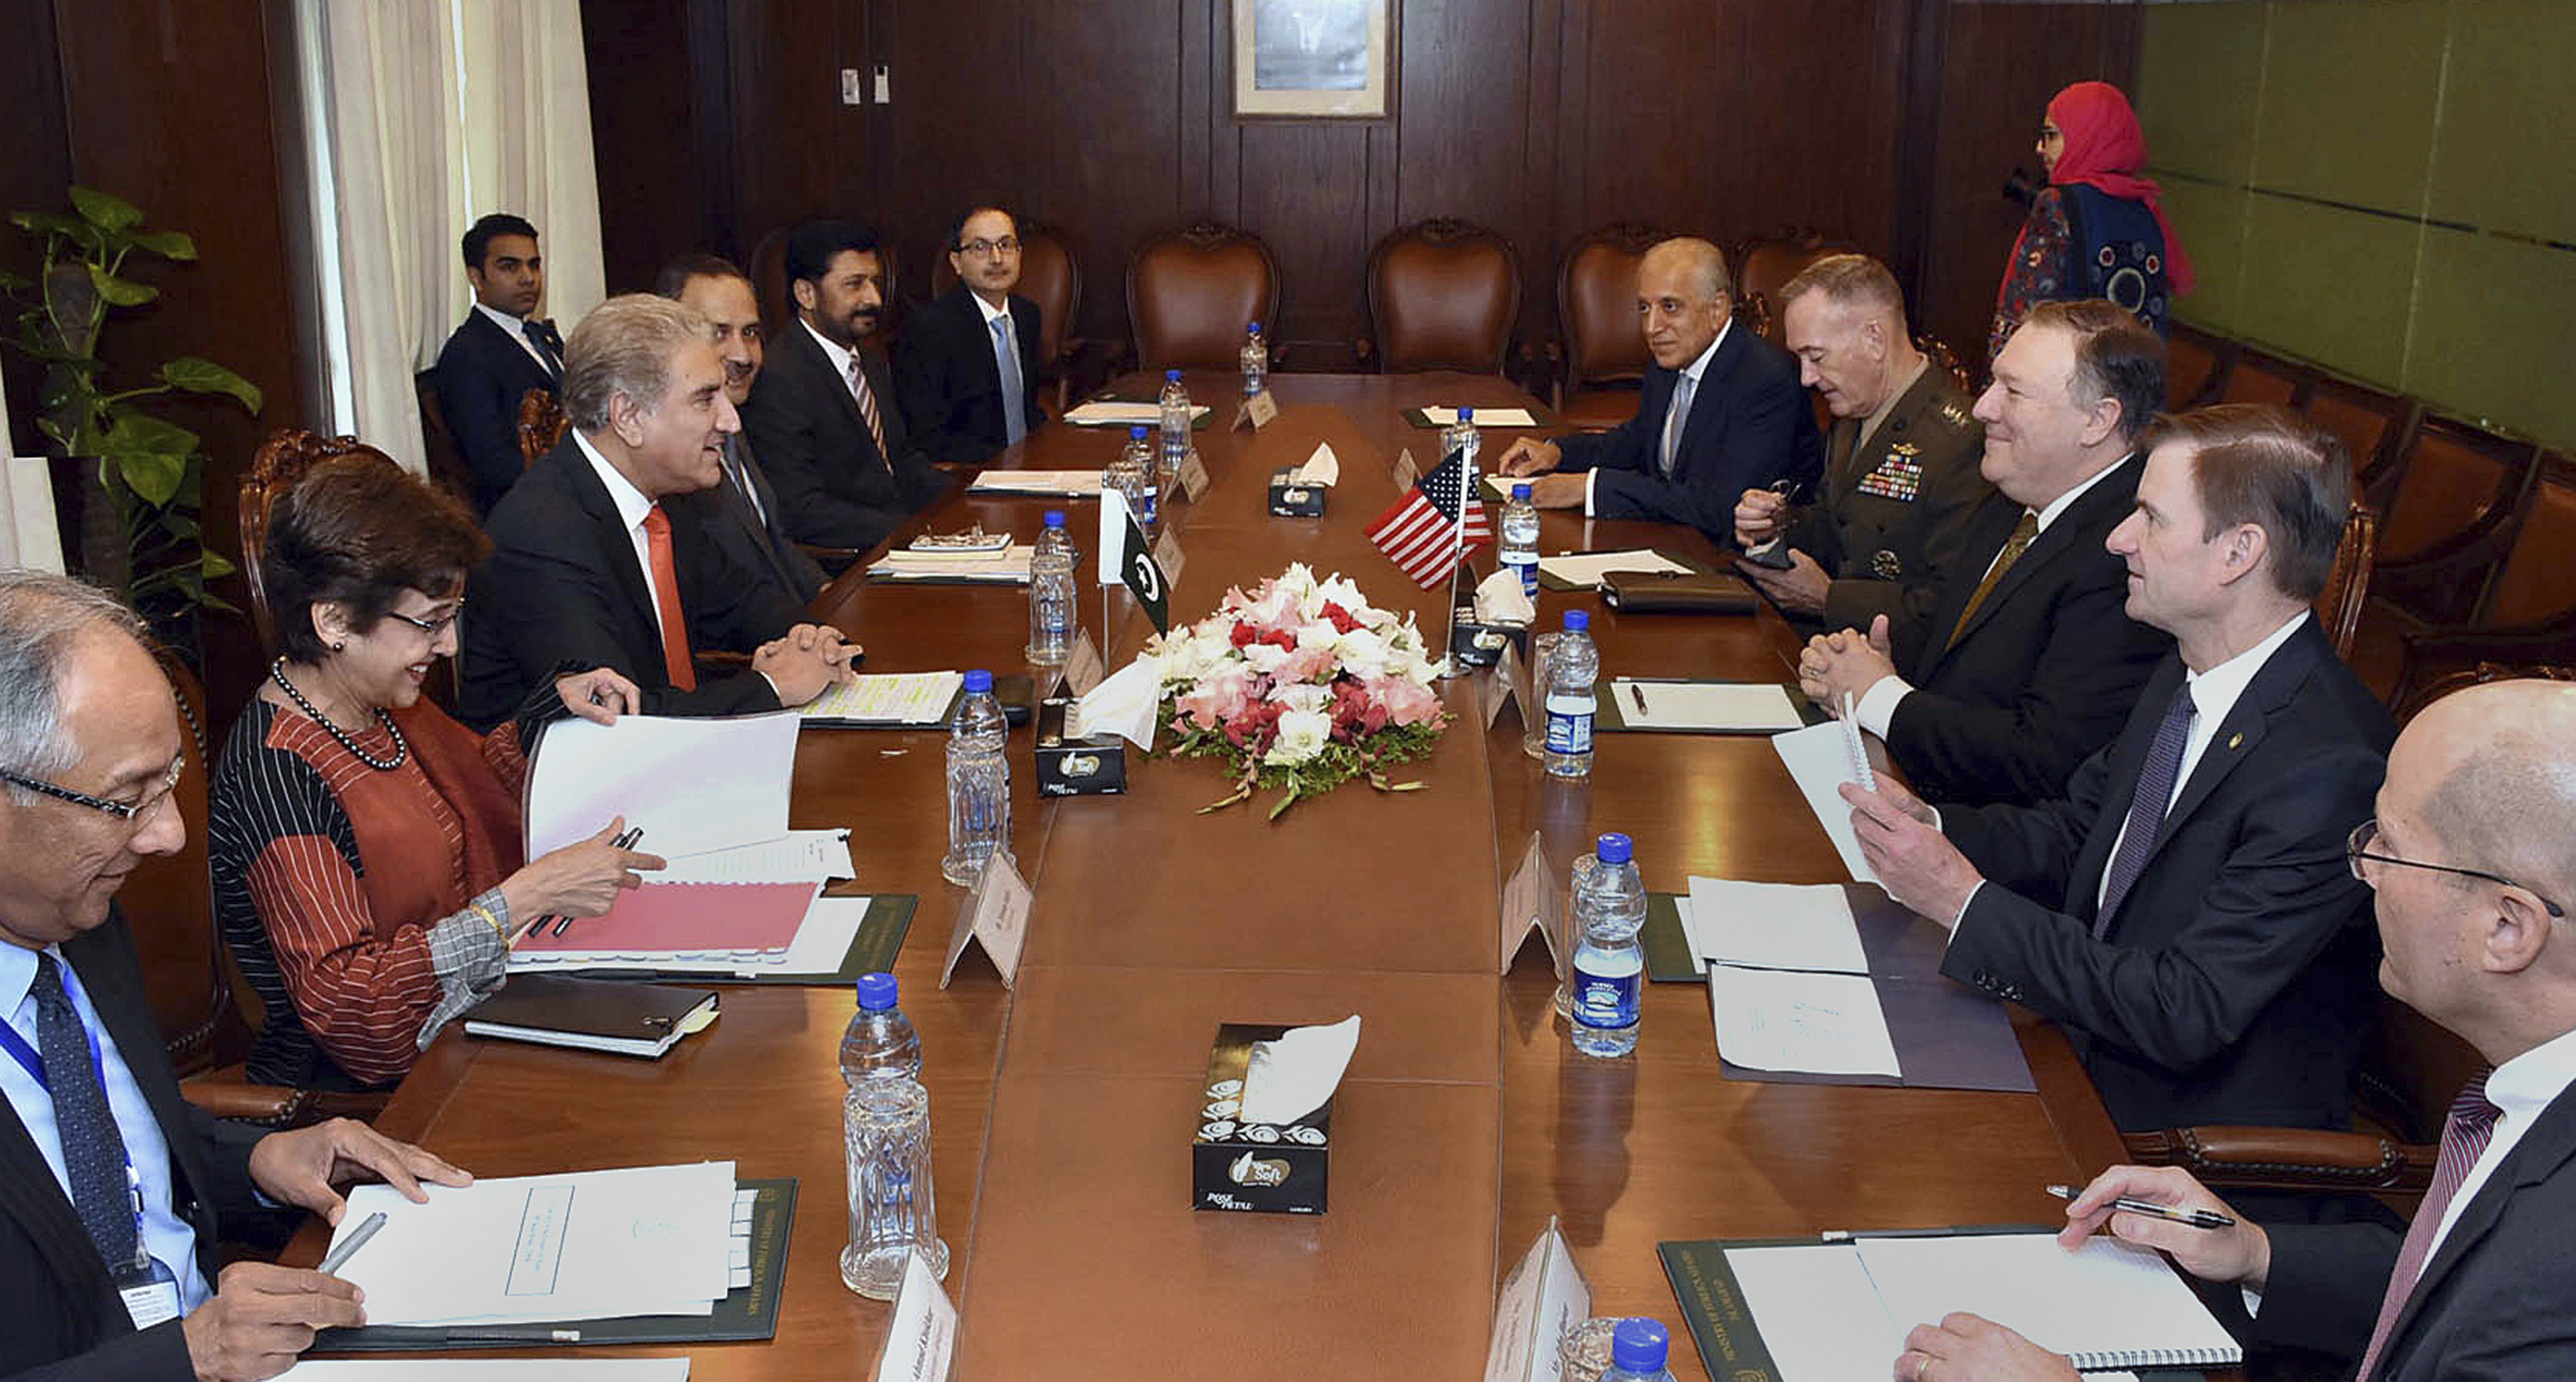 In this photo released by Press Information Department, visiting U.S. Secretary of State Mike Pompeo, third right, talks with Pakistan's foreign minister Shah Mahmood Qureshi, third left, in Islamabad, Sept. 5, 2018.